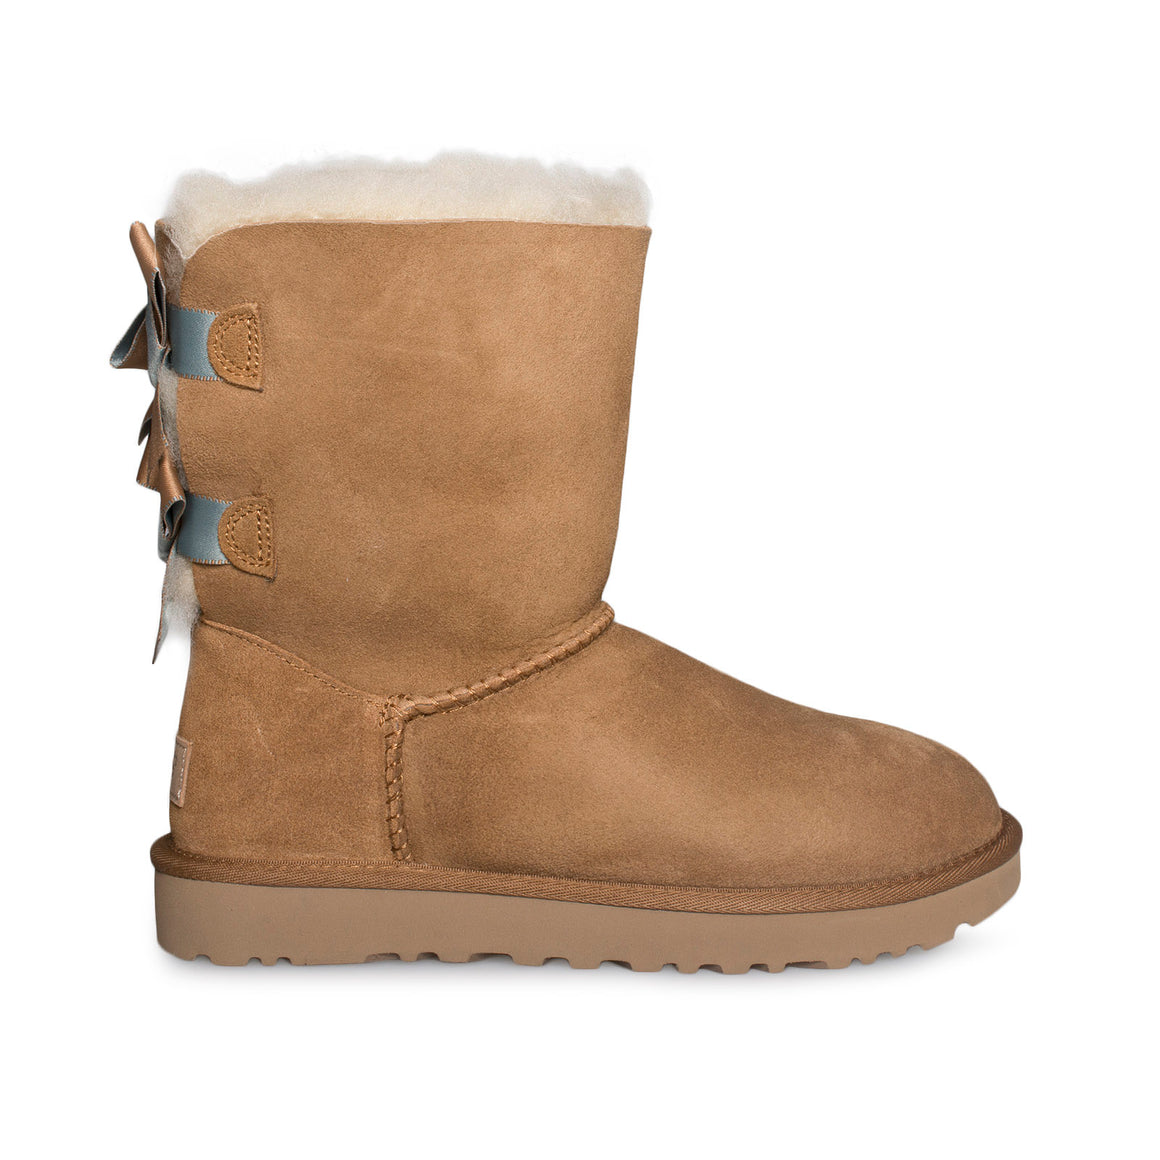 UGG Bailey Bow II Shimmer Chestnut Boots - Women's